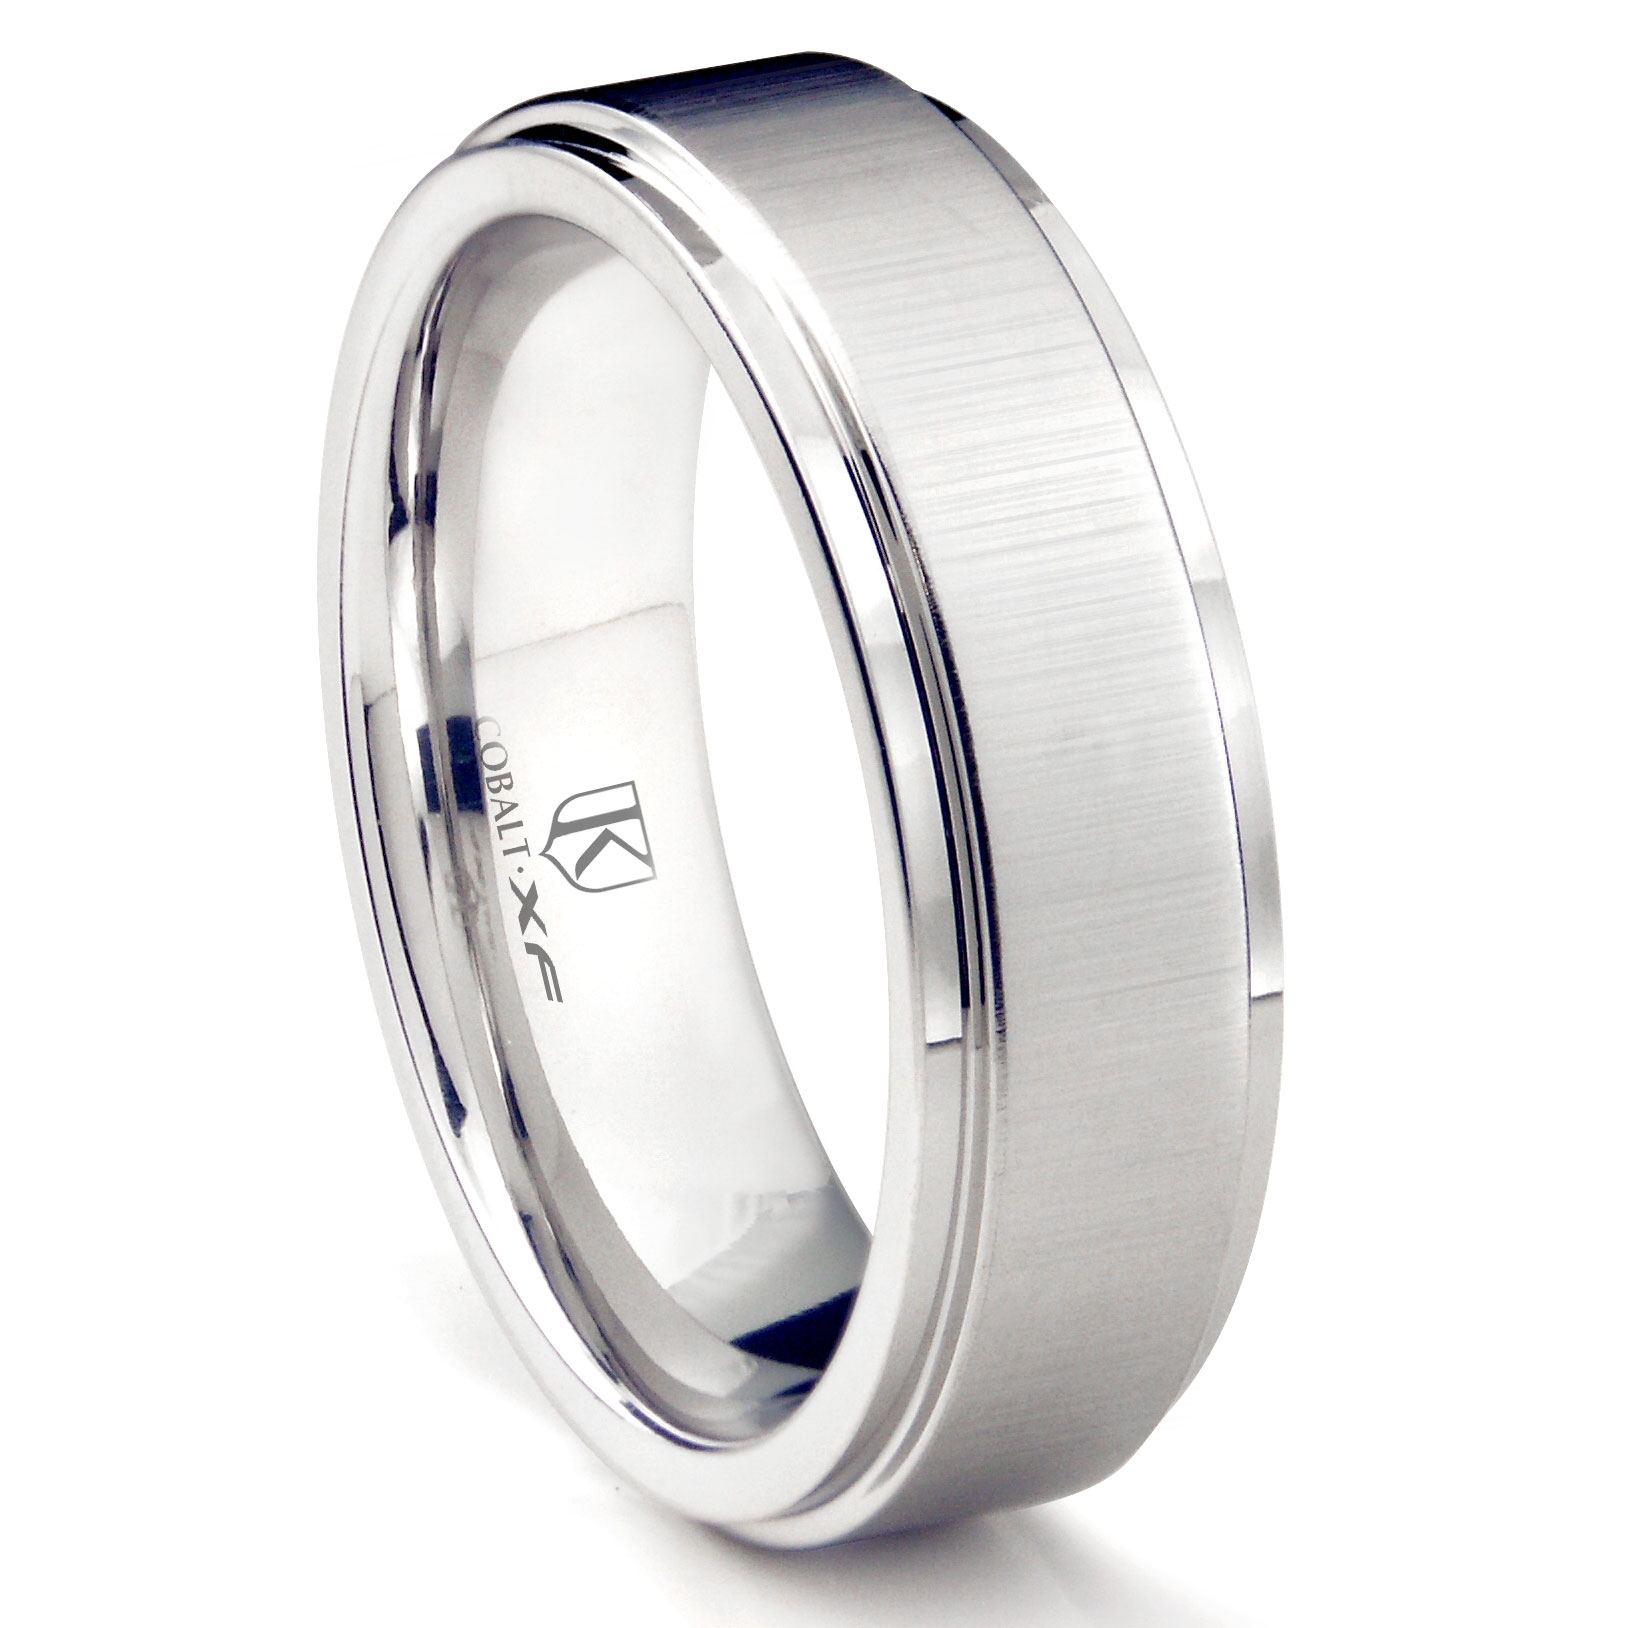 Cobalt Xf Chrome 8mm Satin Finish Wedding Band Ring W/ Raised Center Within Latest Satin Center Grooved Edge Wedding Band In Cobalt (View 14 of 15)